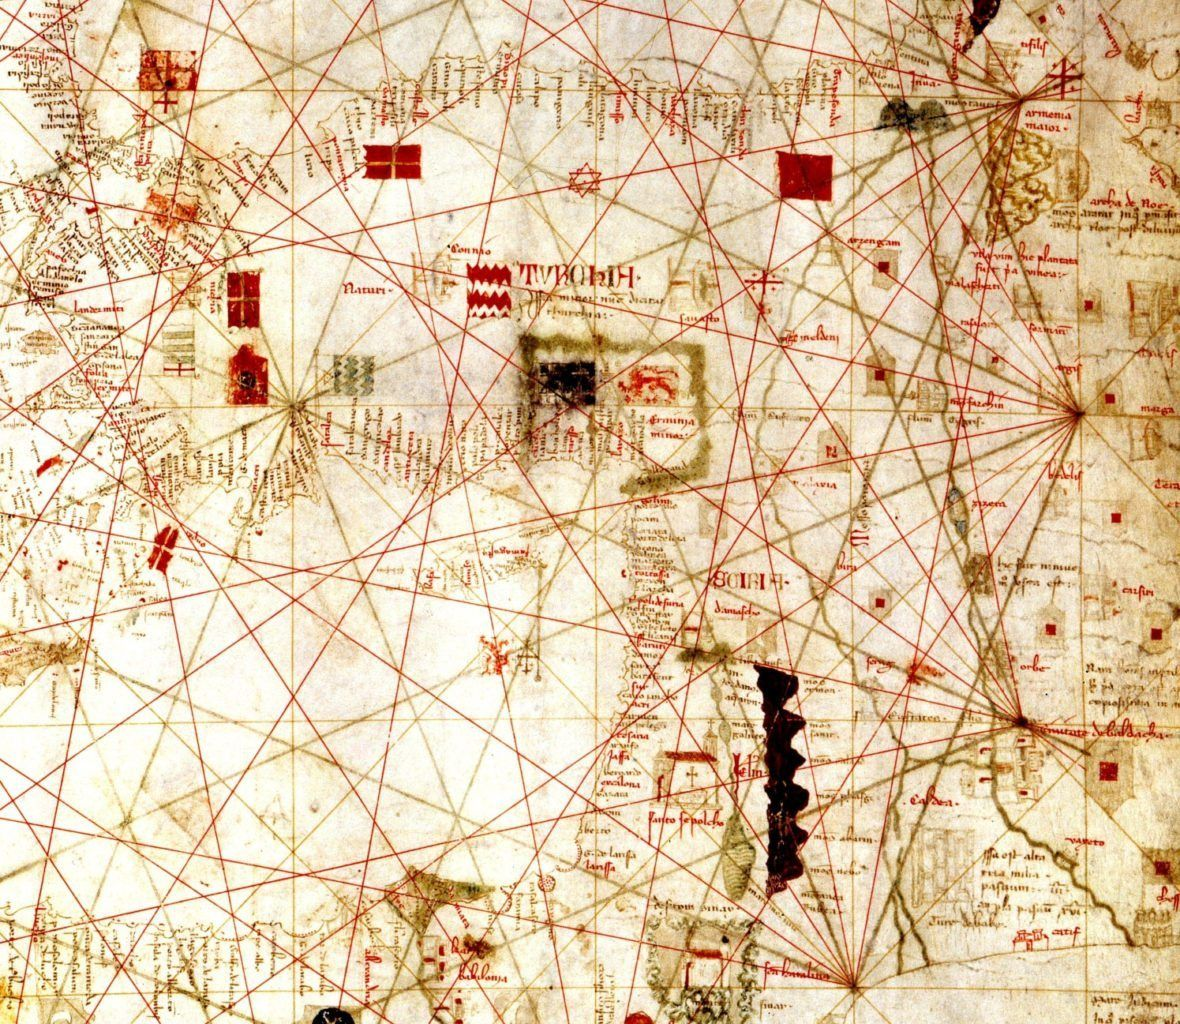 The eastern section of Dulcert's portolan chart of the Mediterranean, dating from 399.